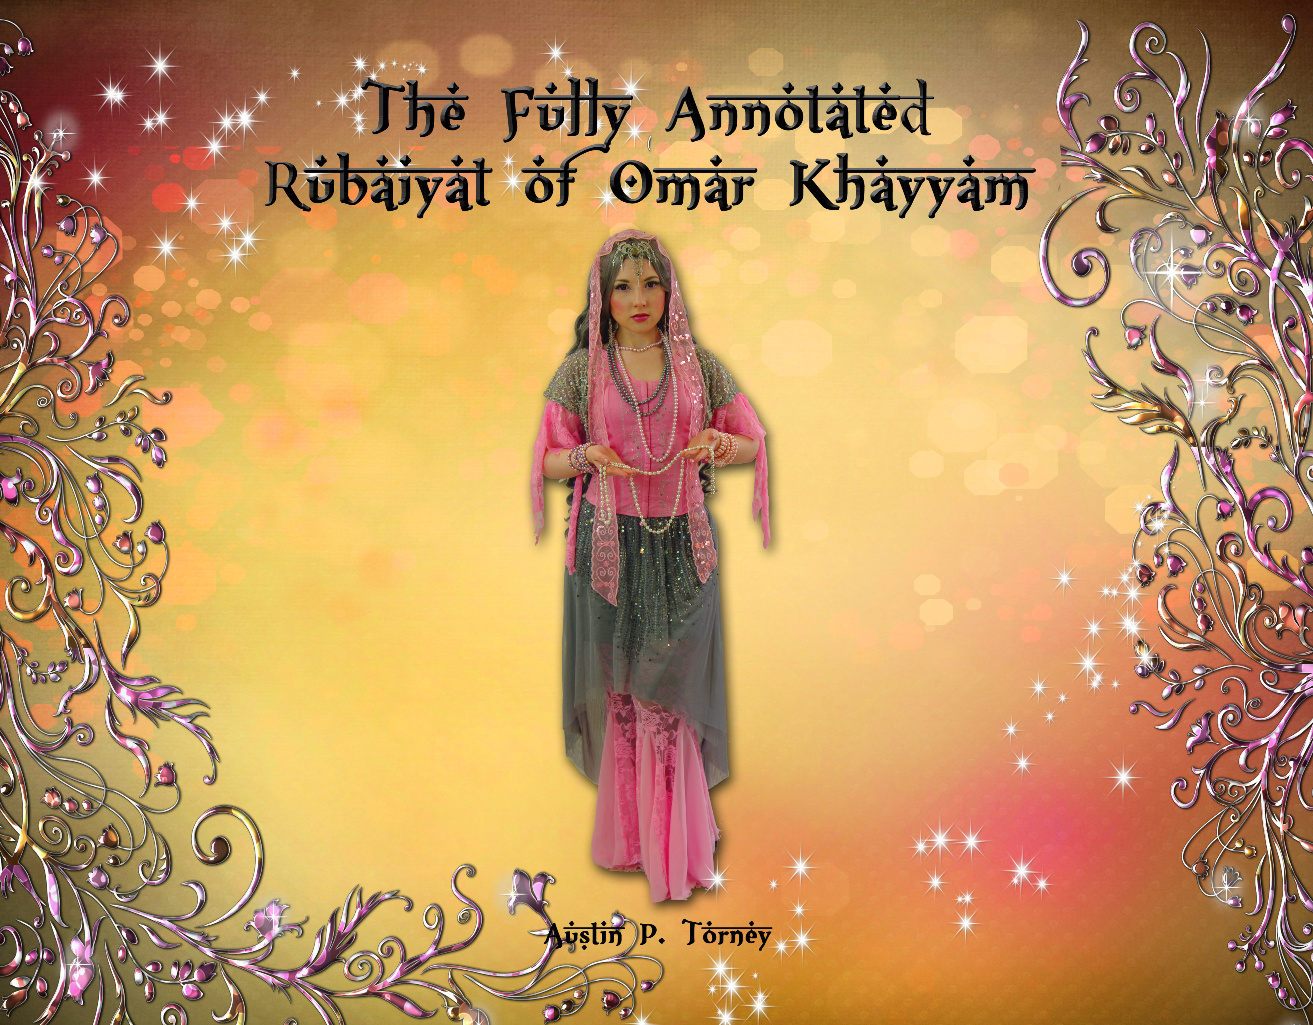 The Fully Annotated Rubaiyat of Omar Khayyam 13x10